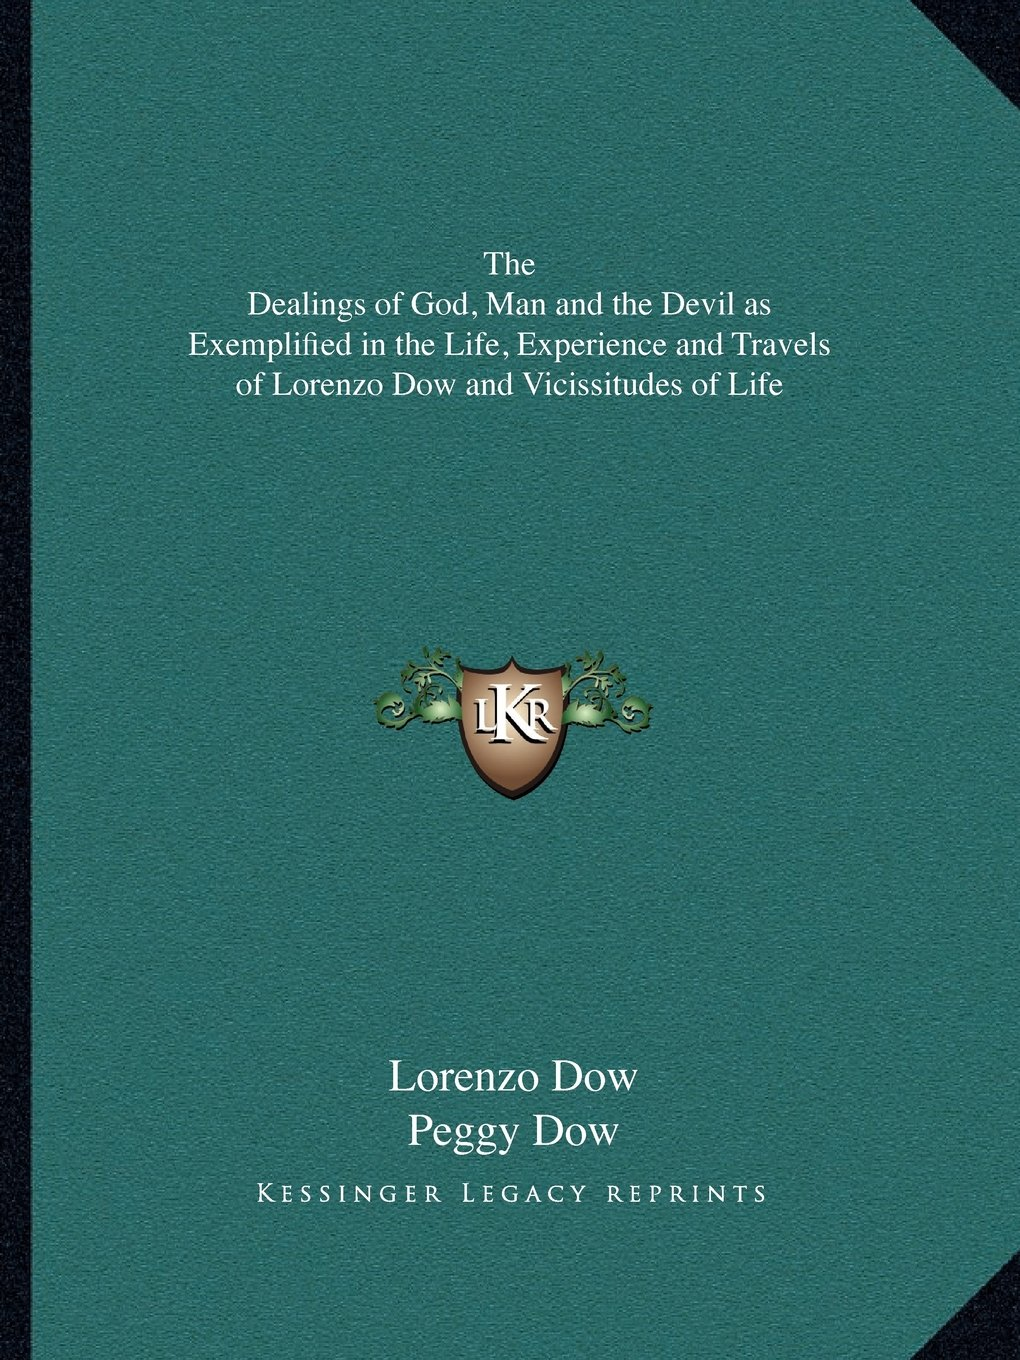 Download The Dealings of God, Man and the Devil as Exemplified in the Life, Experience and Travels of Lorenzo Dow and Vicissitudes of Life pdf epub